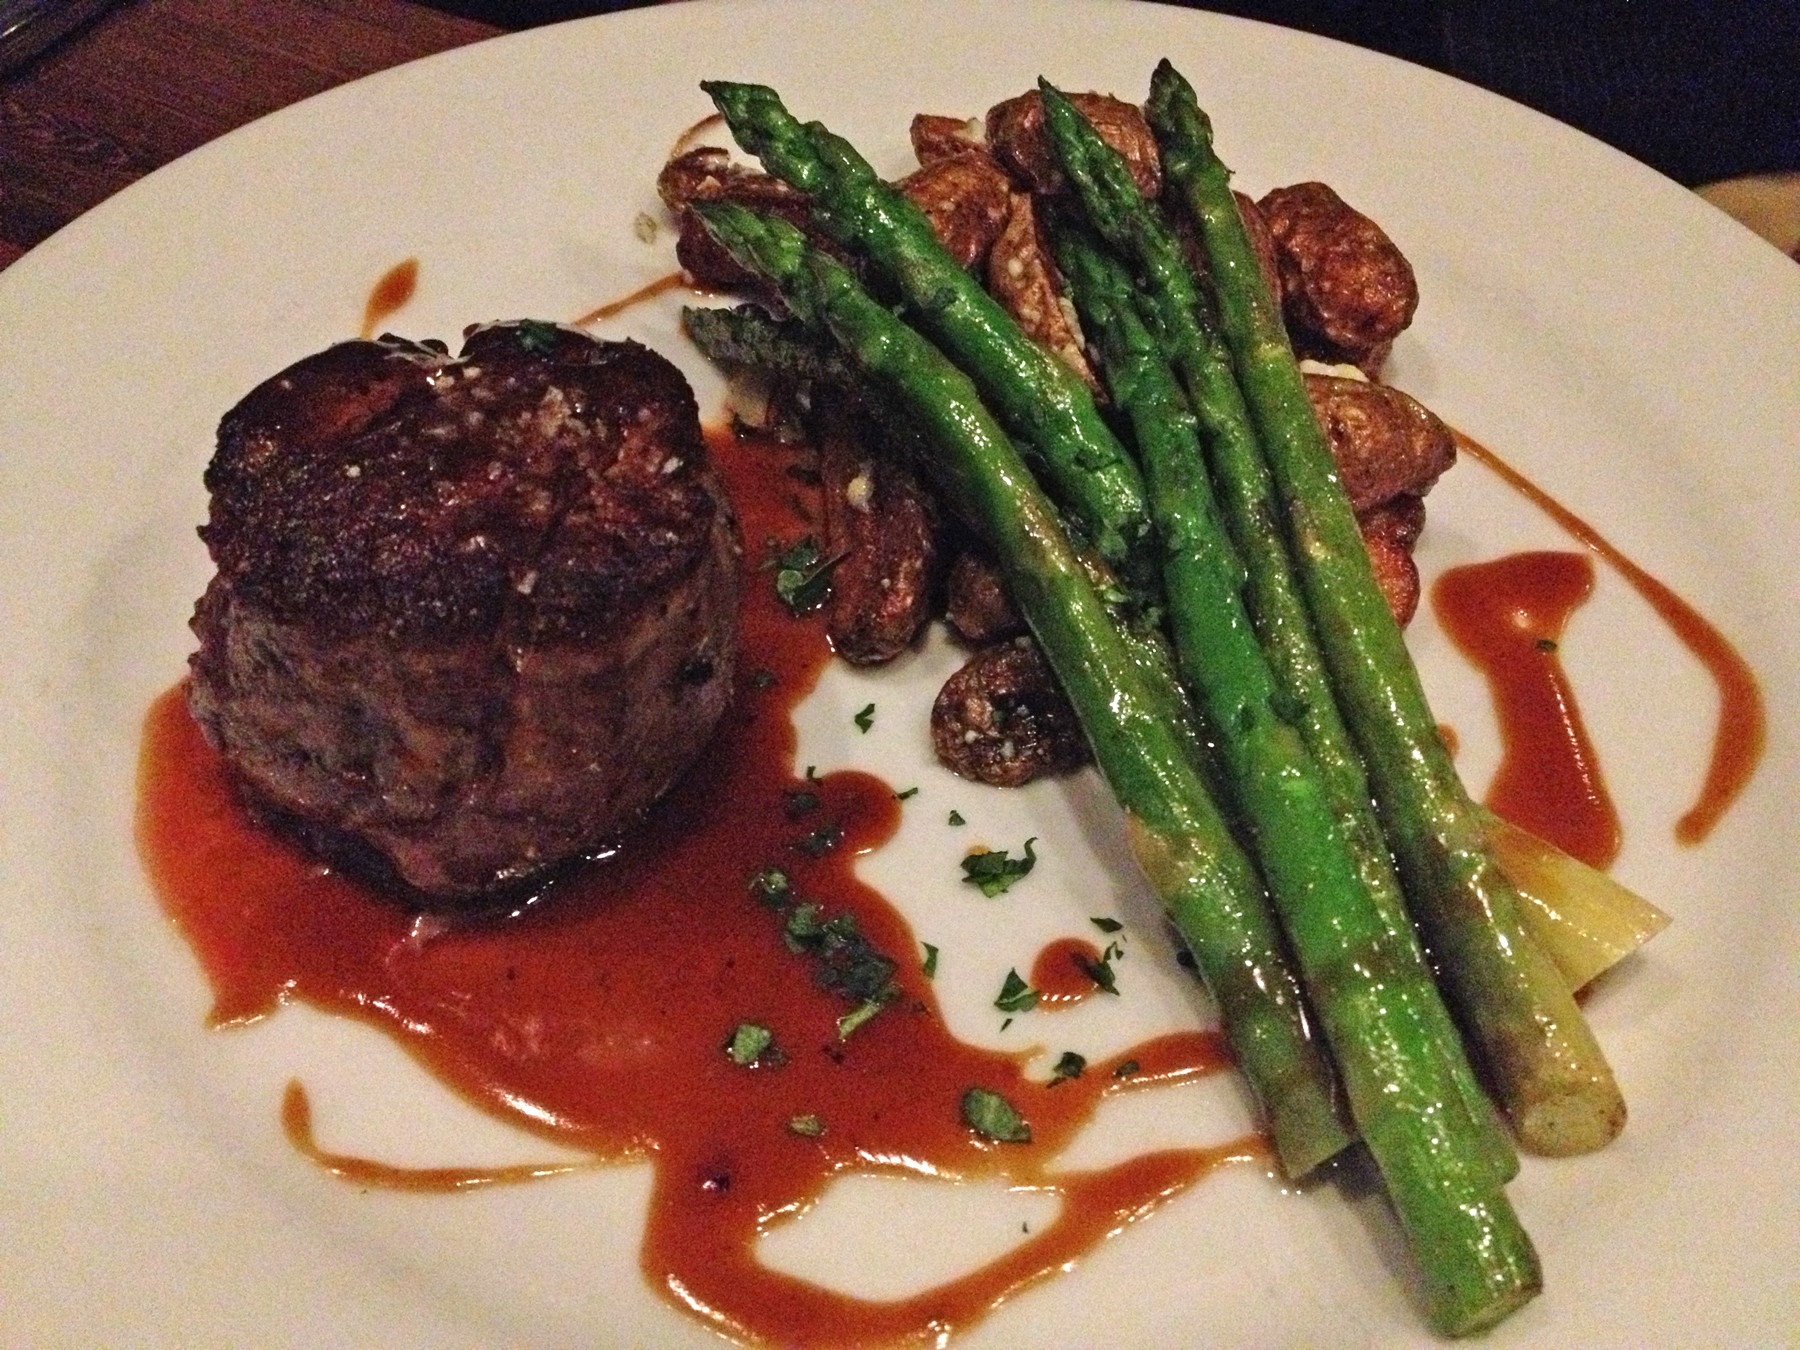 The beef filet is topped with a rich, flavorful bordelaise demi-glaçe, served with bleu cheese fingerling potatoes and fresh asparagus spears.